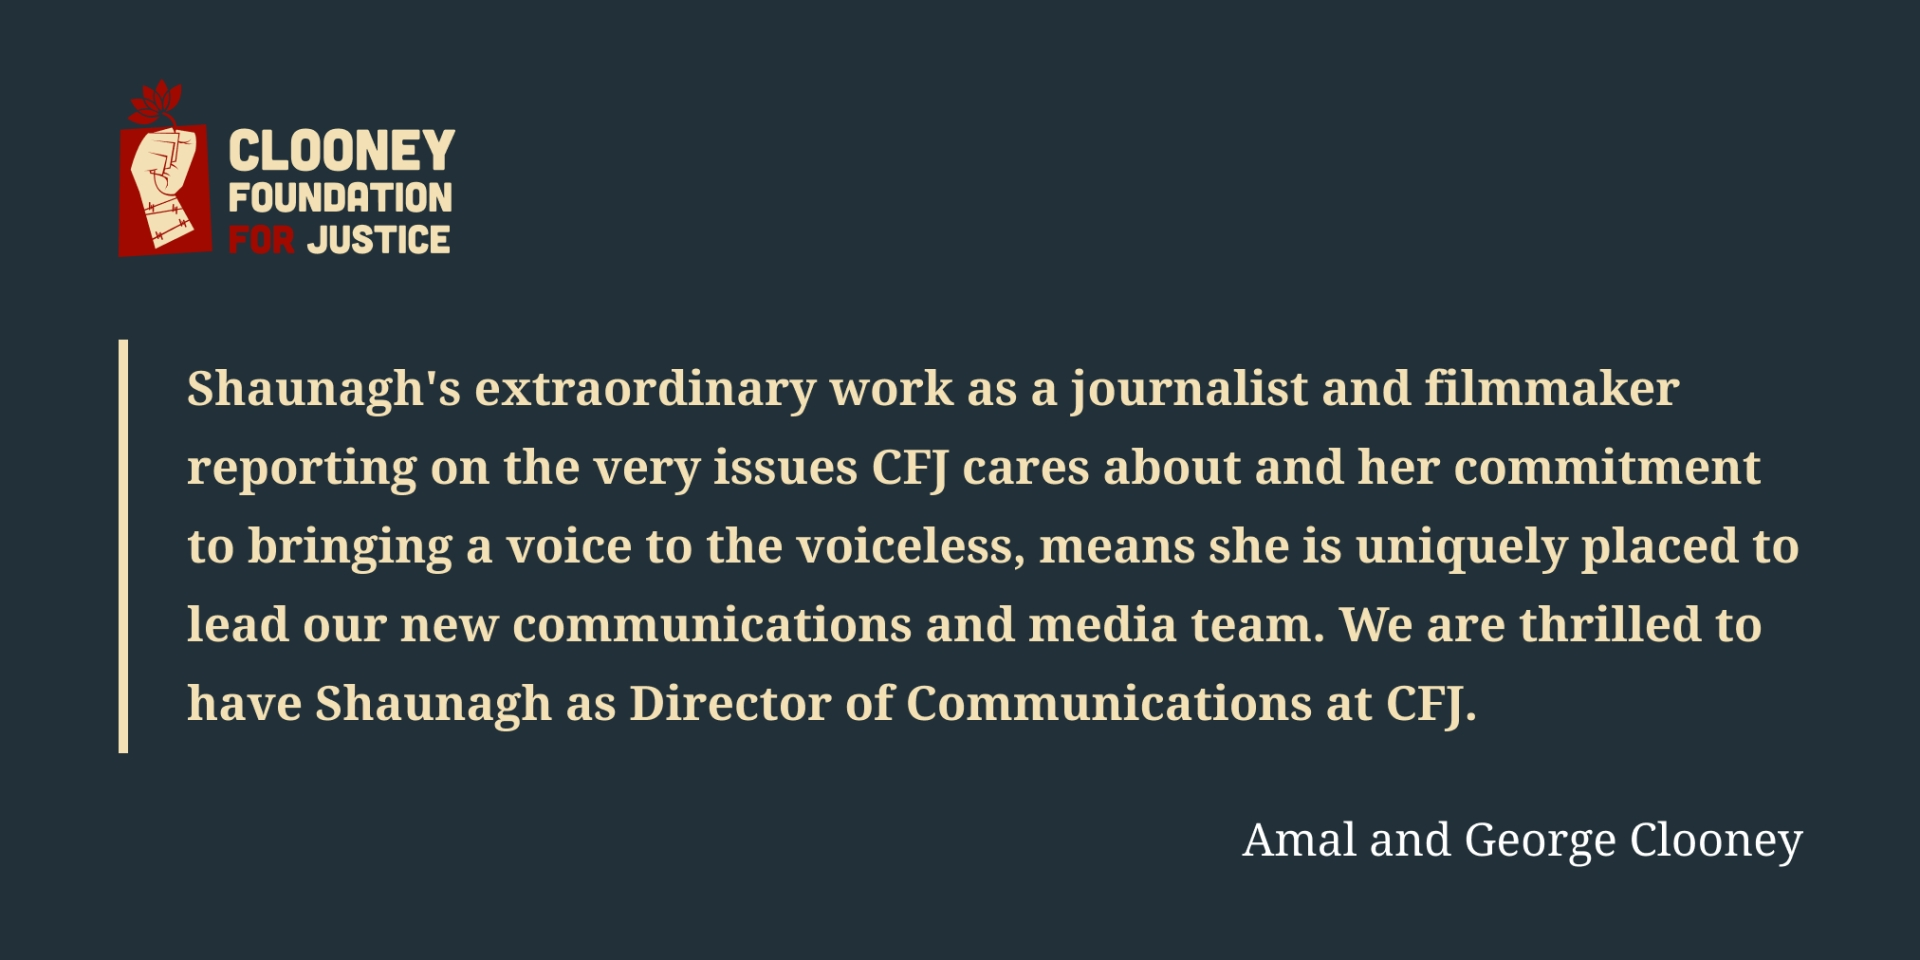 Huge appointment for Longford journalist as she links up with Amal and George Clooney and the Clooney Foundation for Justice 1624020107760